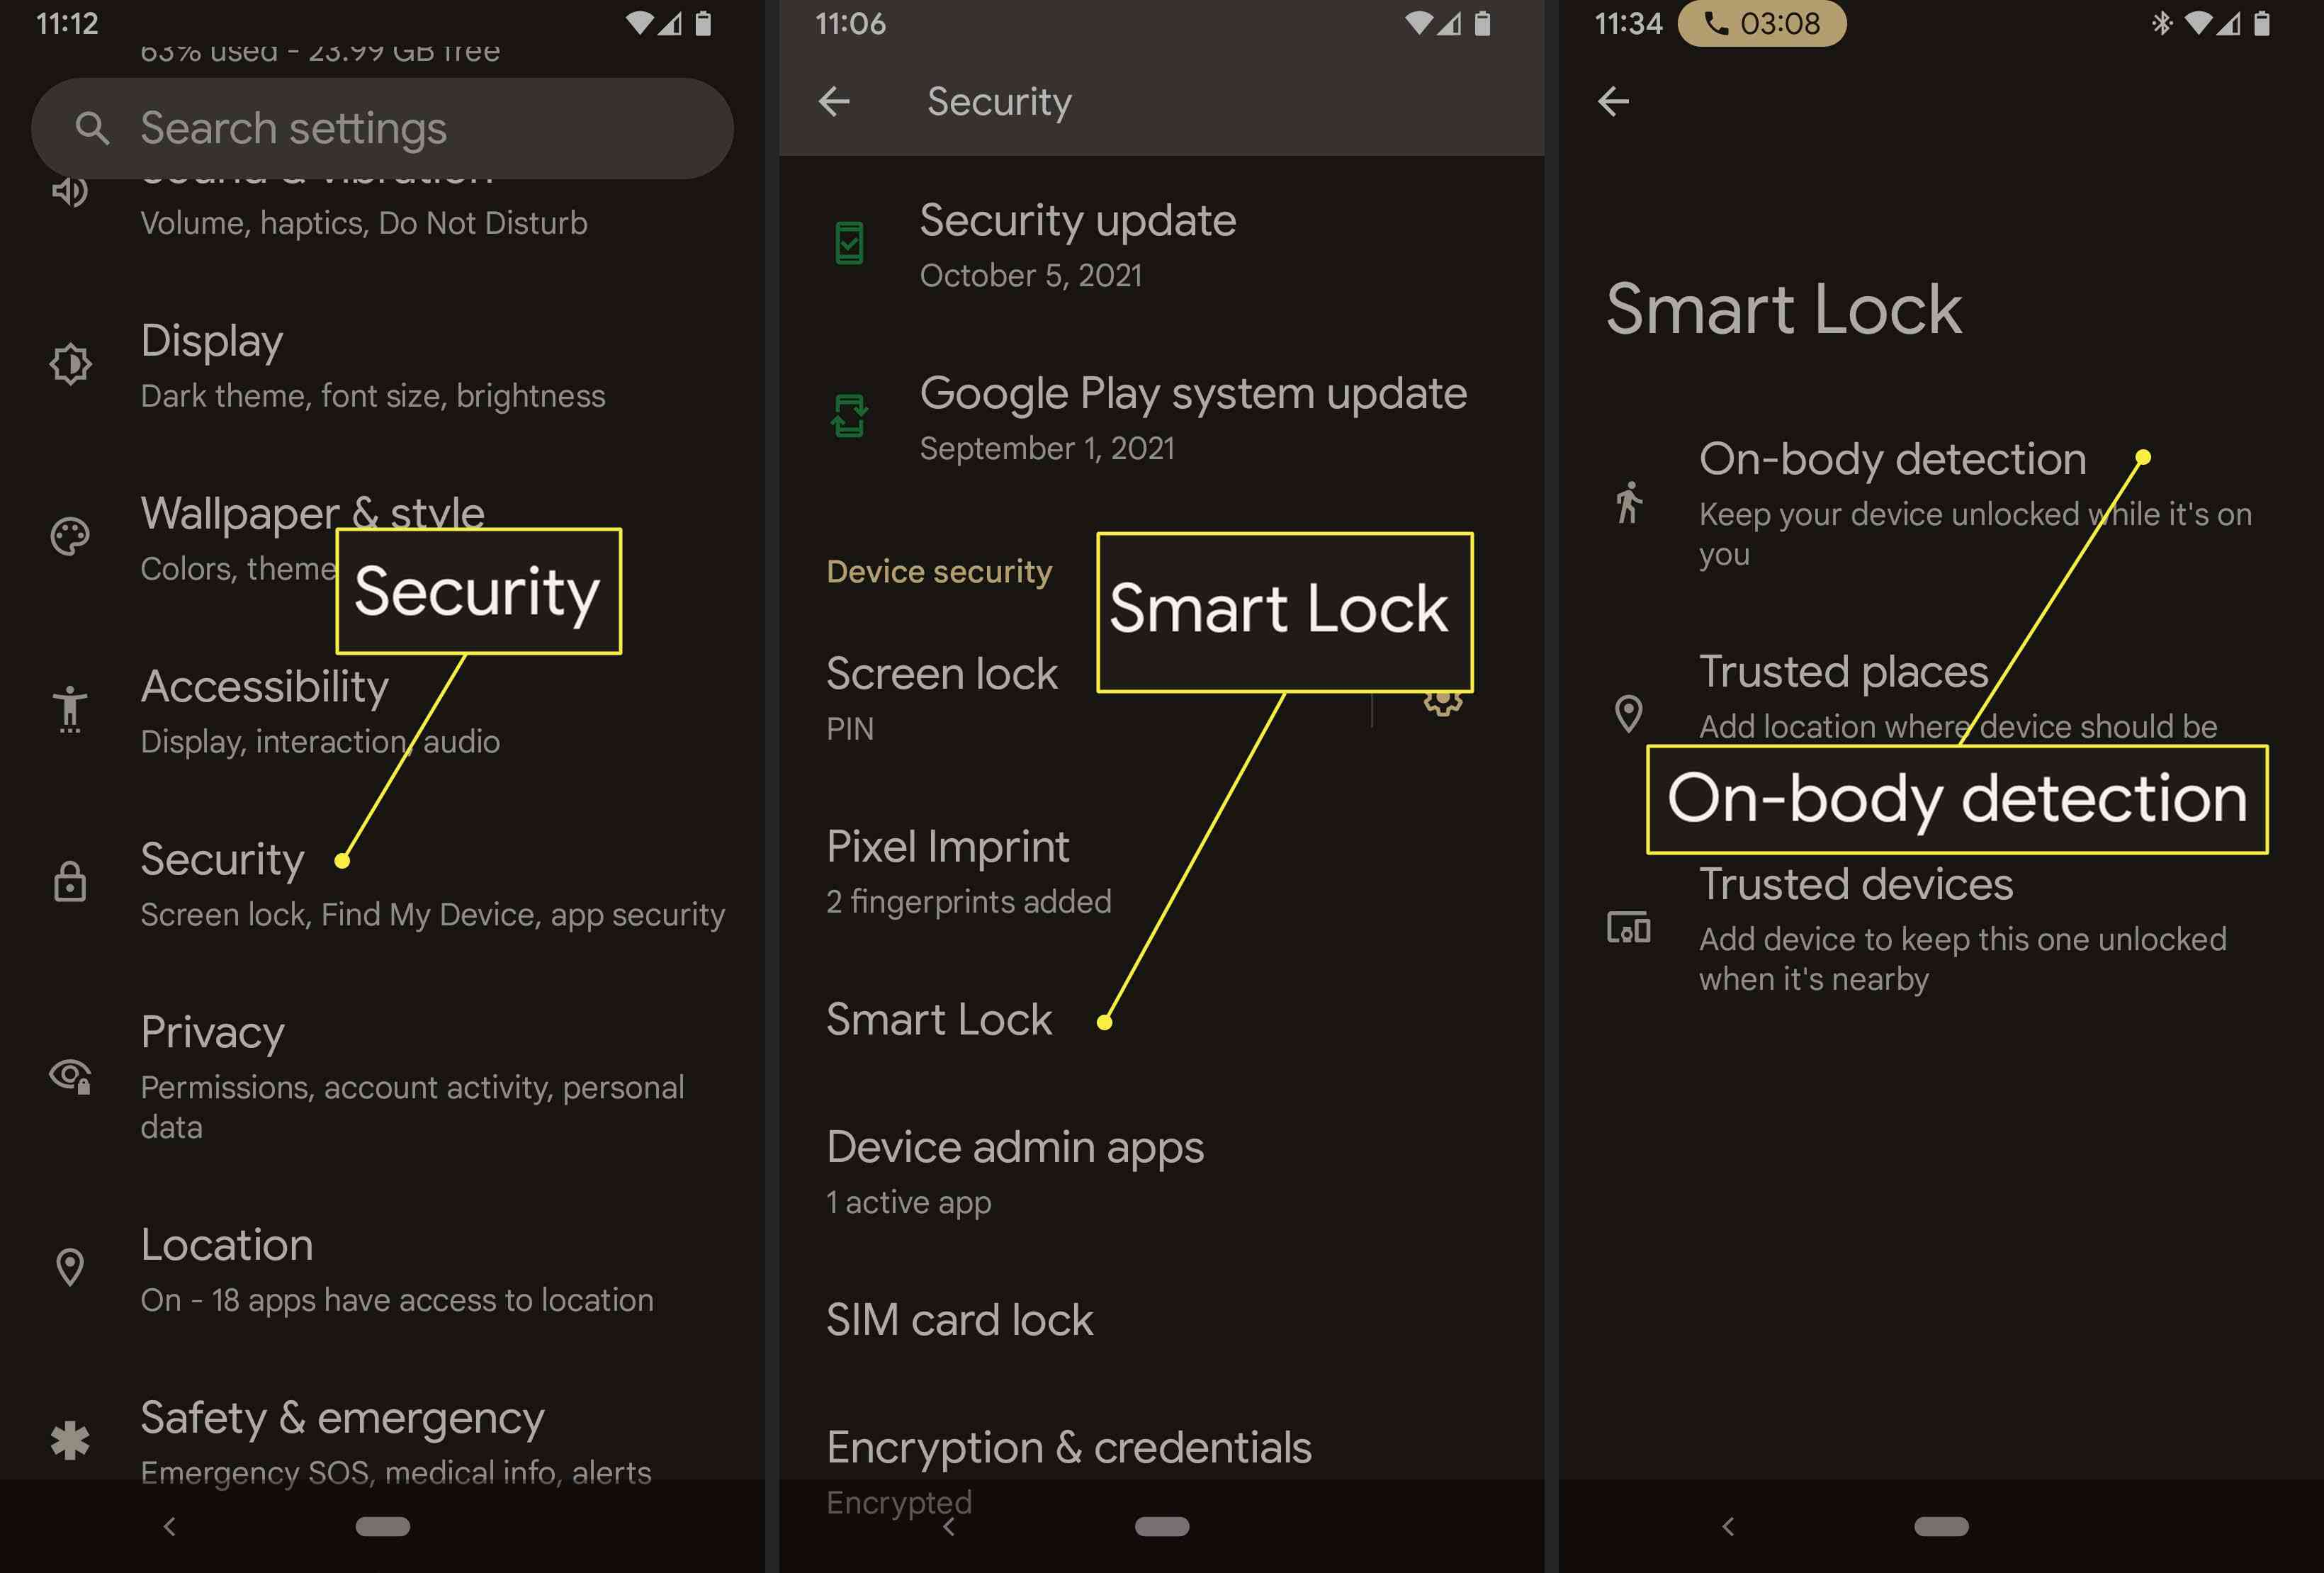 An Android user enables Smart Lock